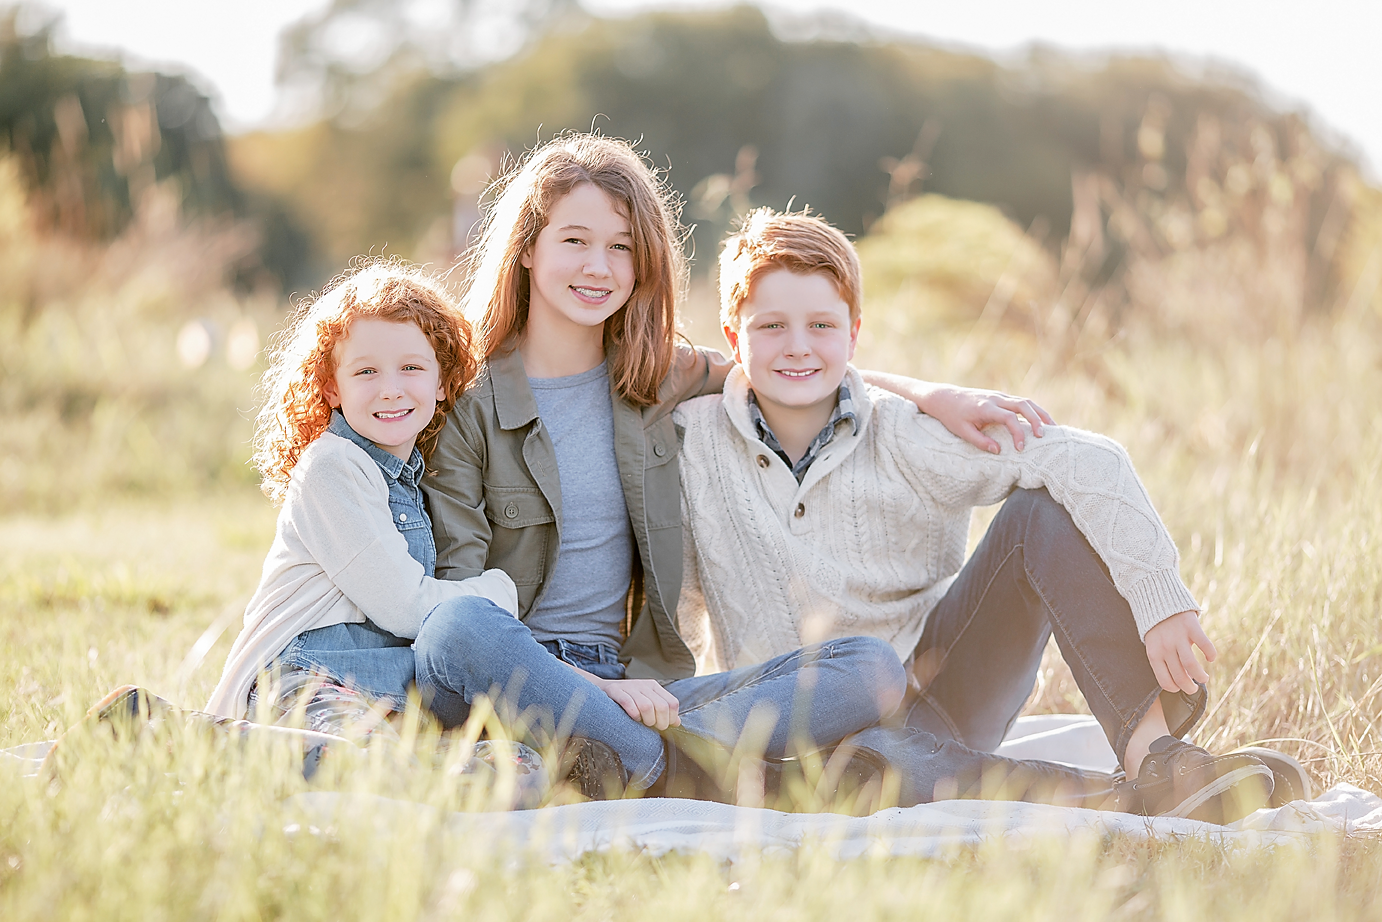 Dallas Family Photographer Southlake Photography Janning kate marie portraiture 2.png